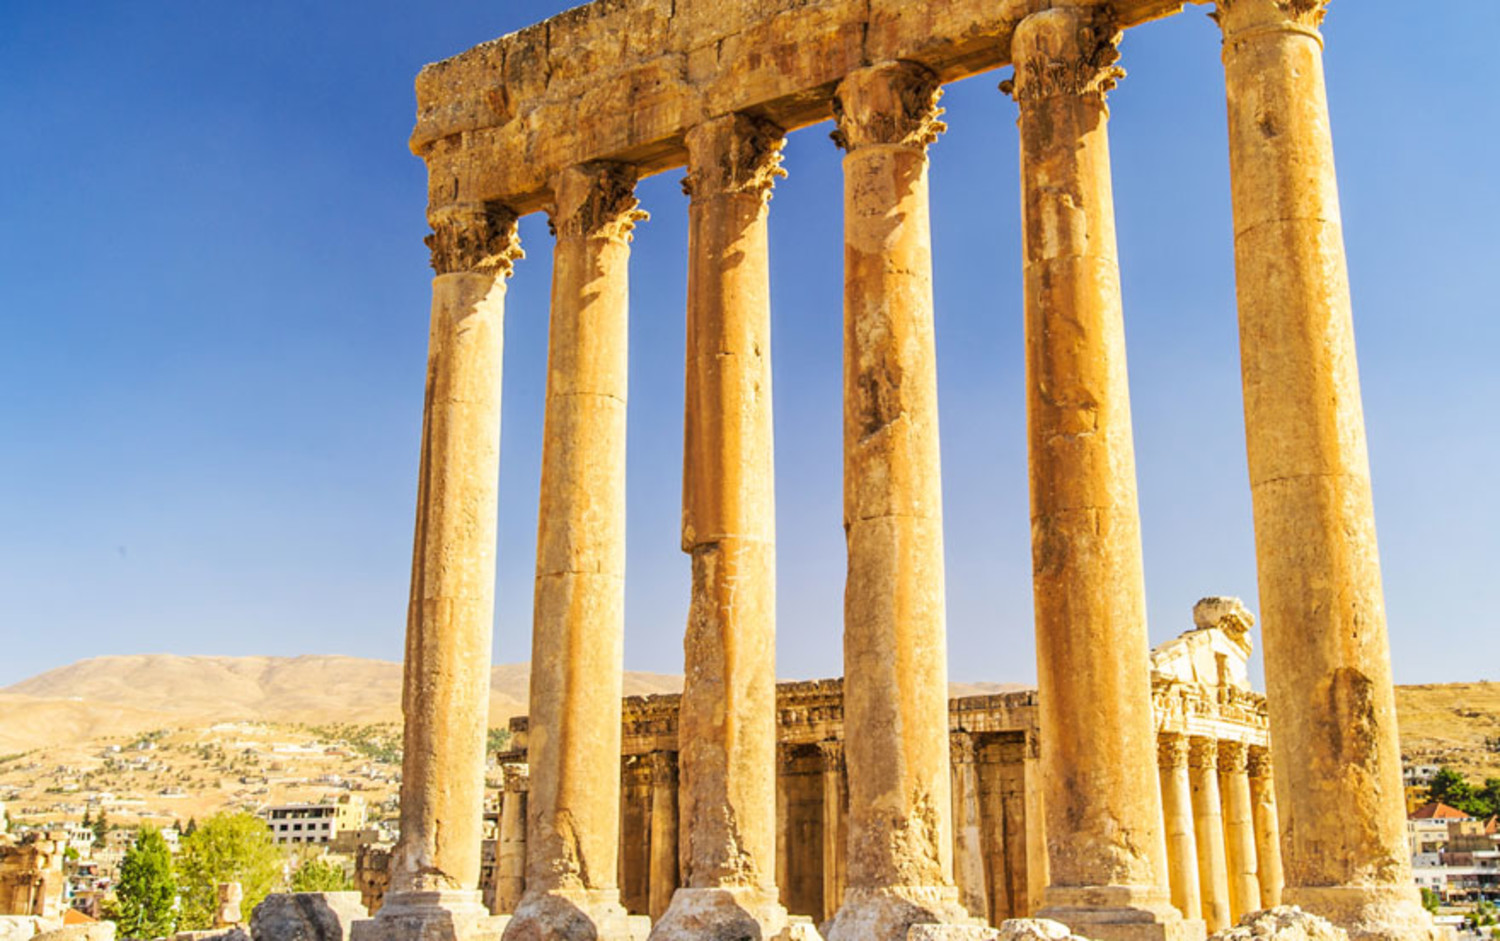 Ancient Columns in Lebanon